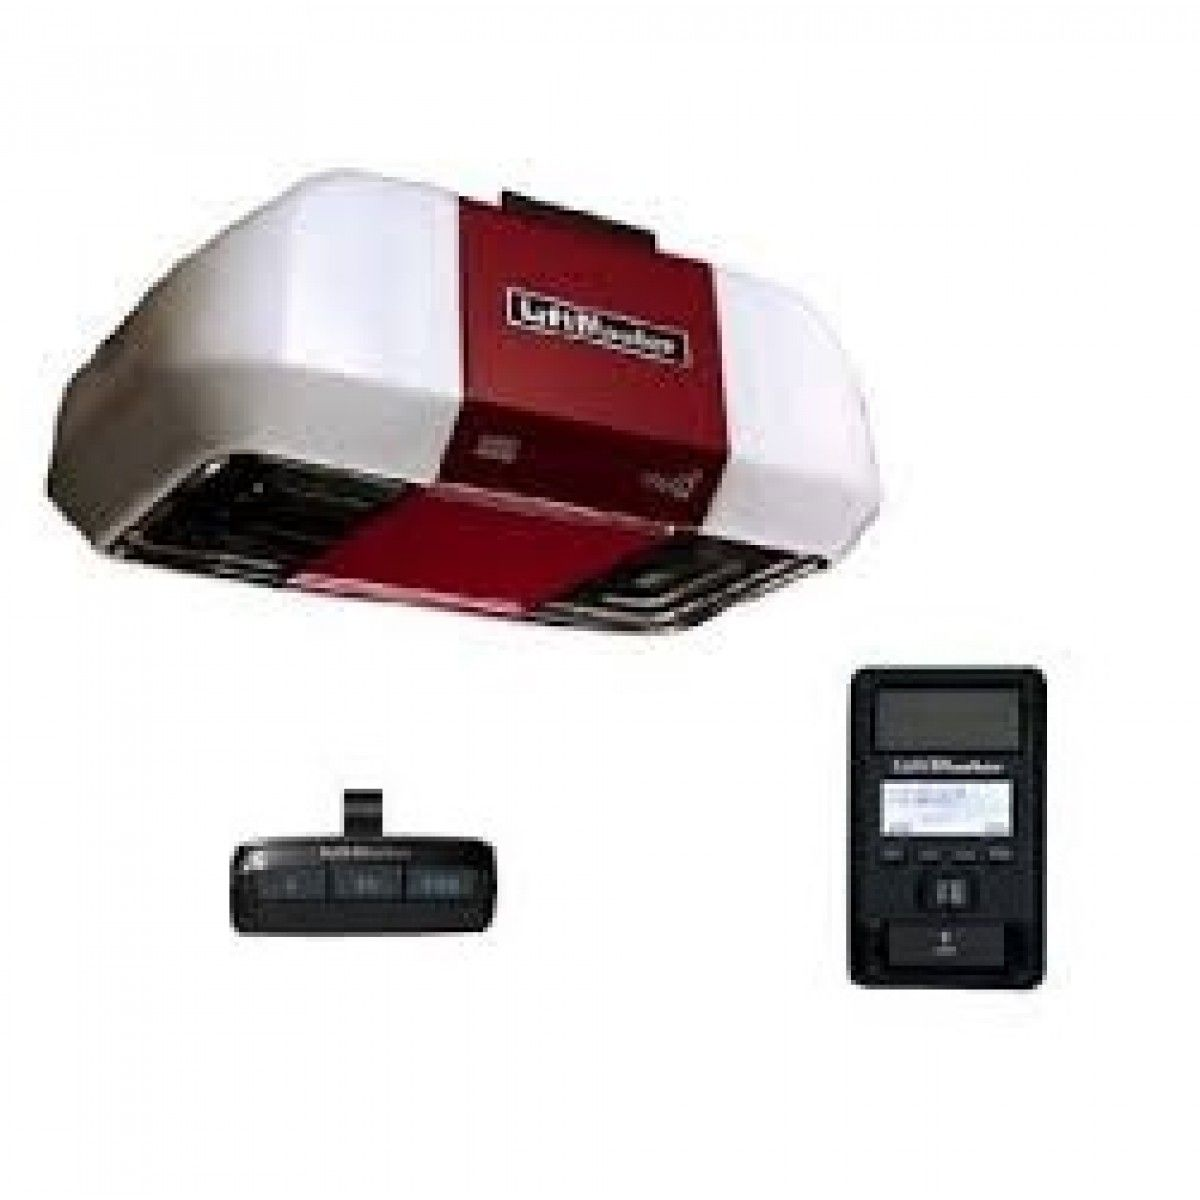 Liftmaster 8550w Dc Backup Capable Belt Drive Wi Fi Garage Opener Liftmaster Garage Door Opener Garage Door Opener Liftmaster